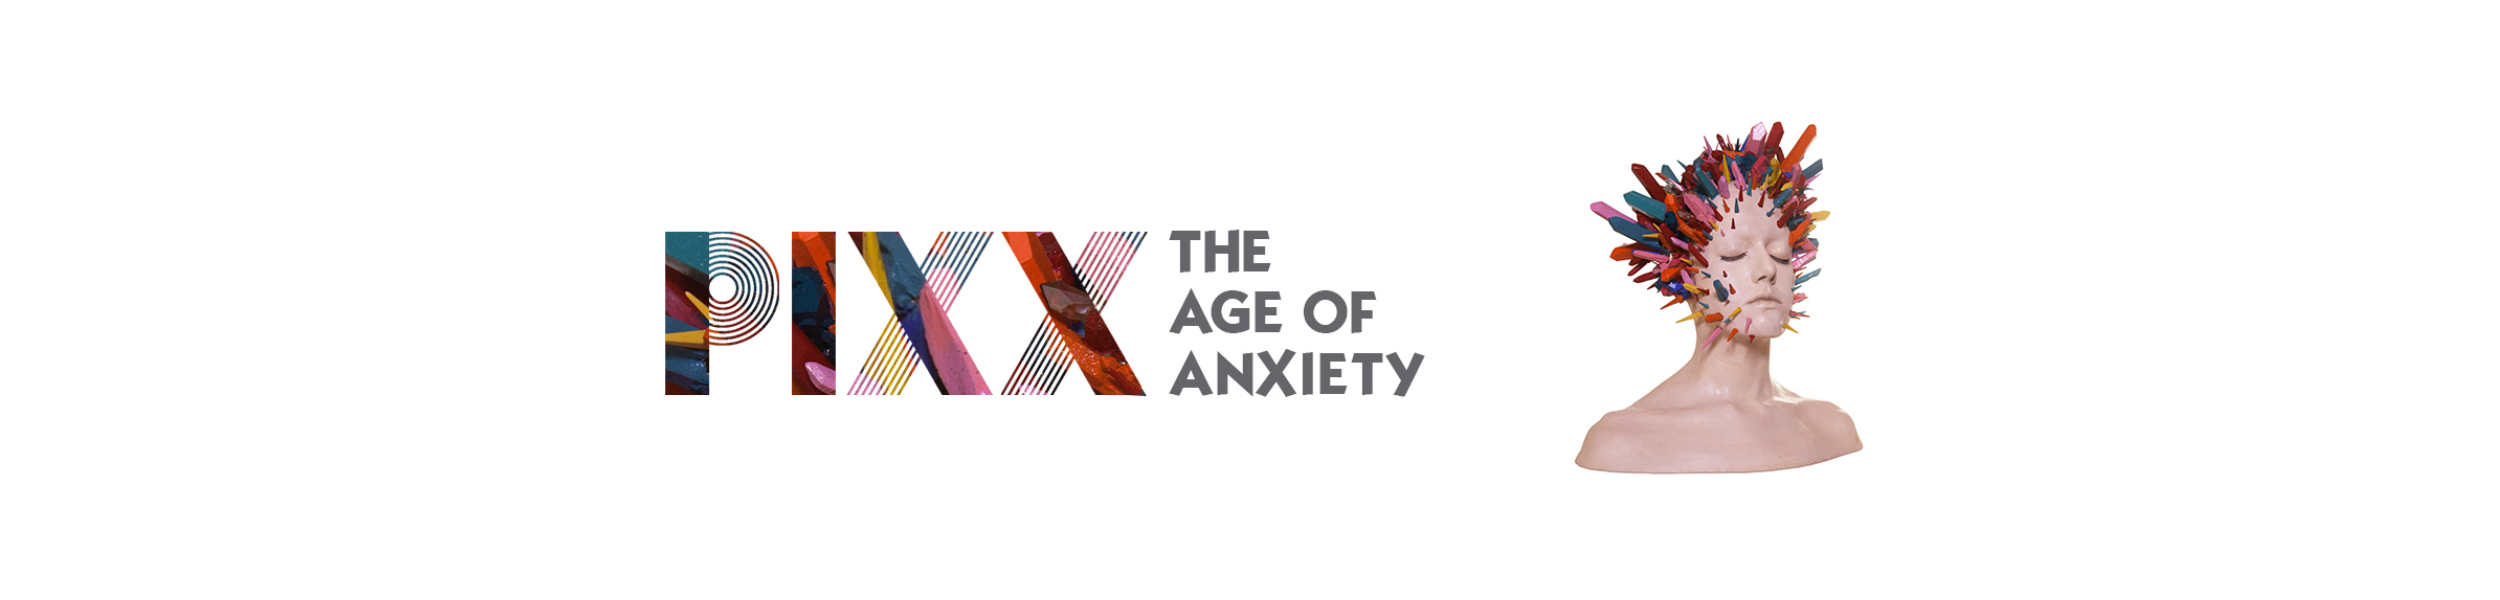 Pixx - The Age Of Anxiety